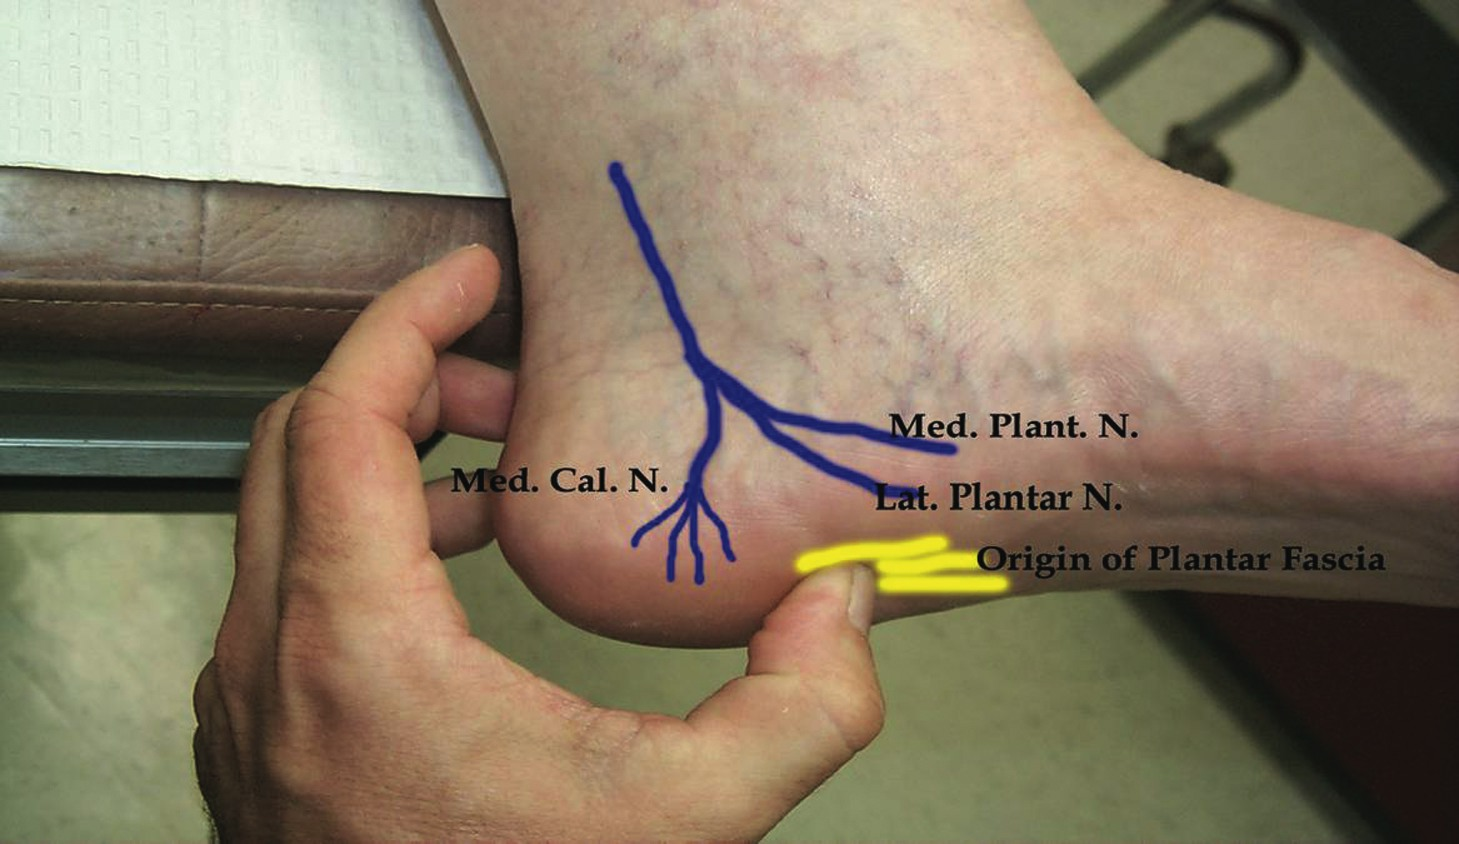 If you have been treated for plantar fascitis but you continue to have -1.bp.blogspot.com